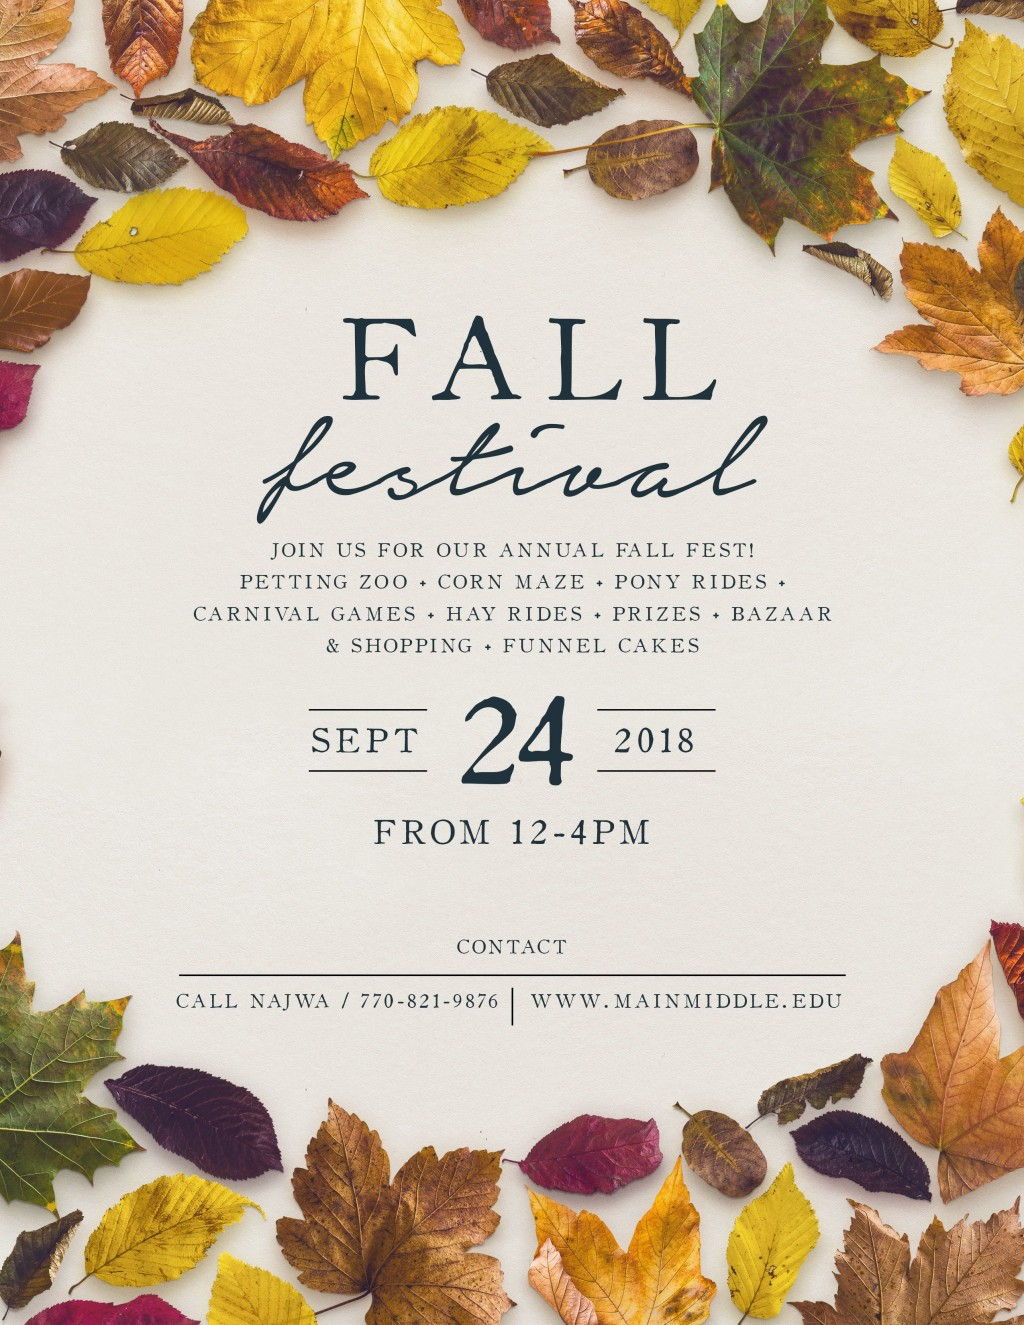 009 Excellent Fall Festival Flyer Template Picture  FreeLarge